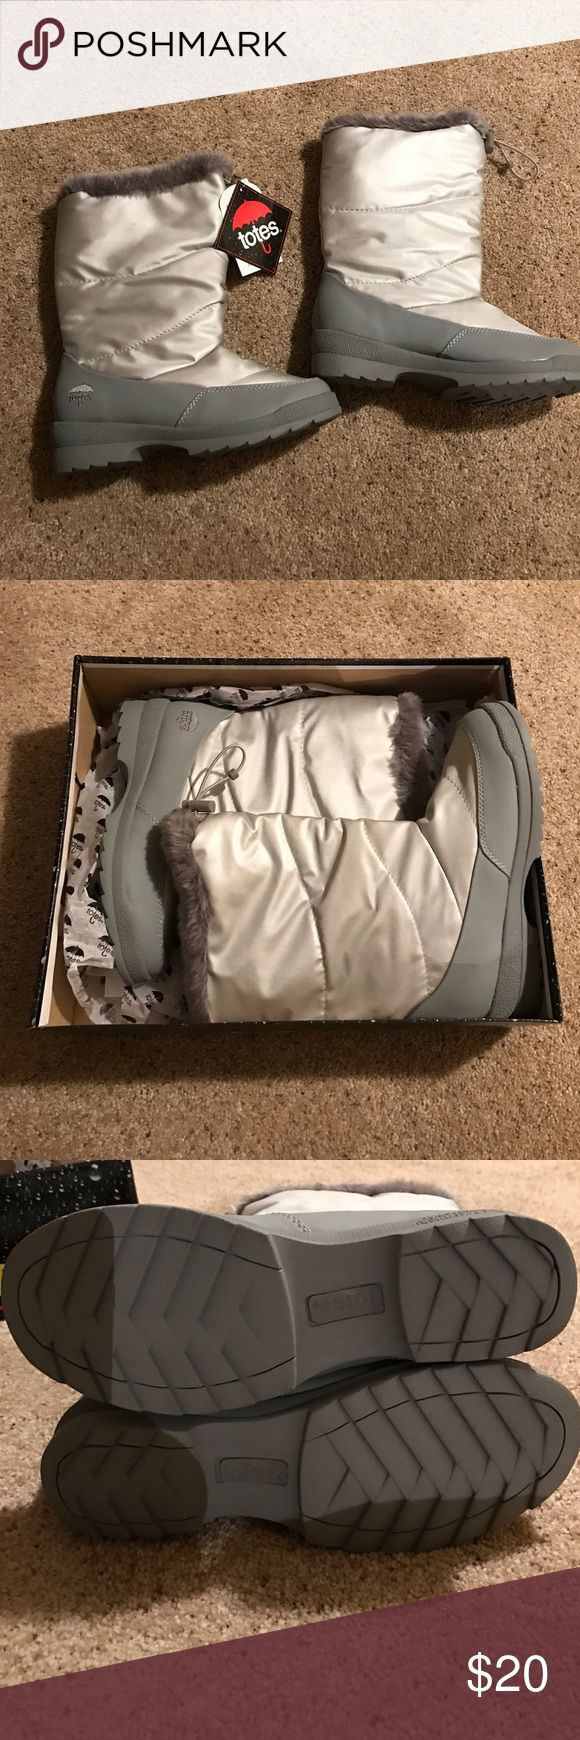 Women's pull up boot - swan silver Comfortable, new with tags, never worn. Swan silver in color. Totes Shoes Winter & Rain Boots